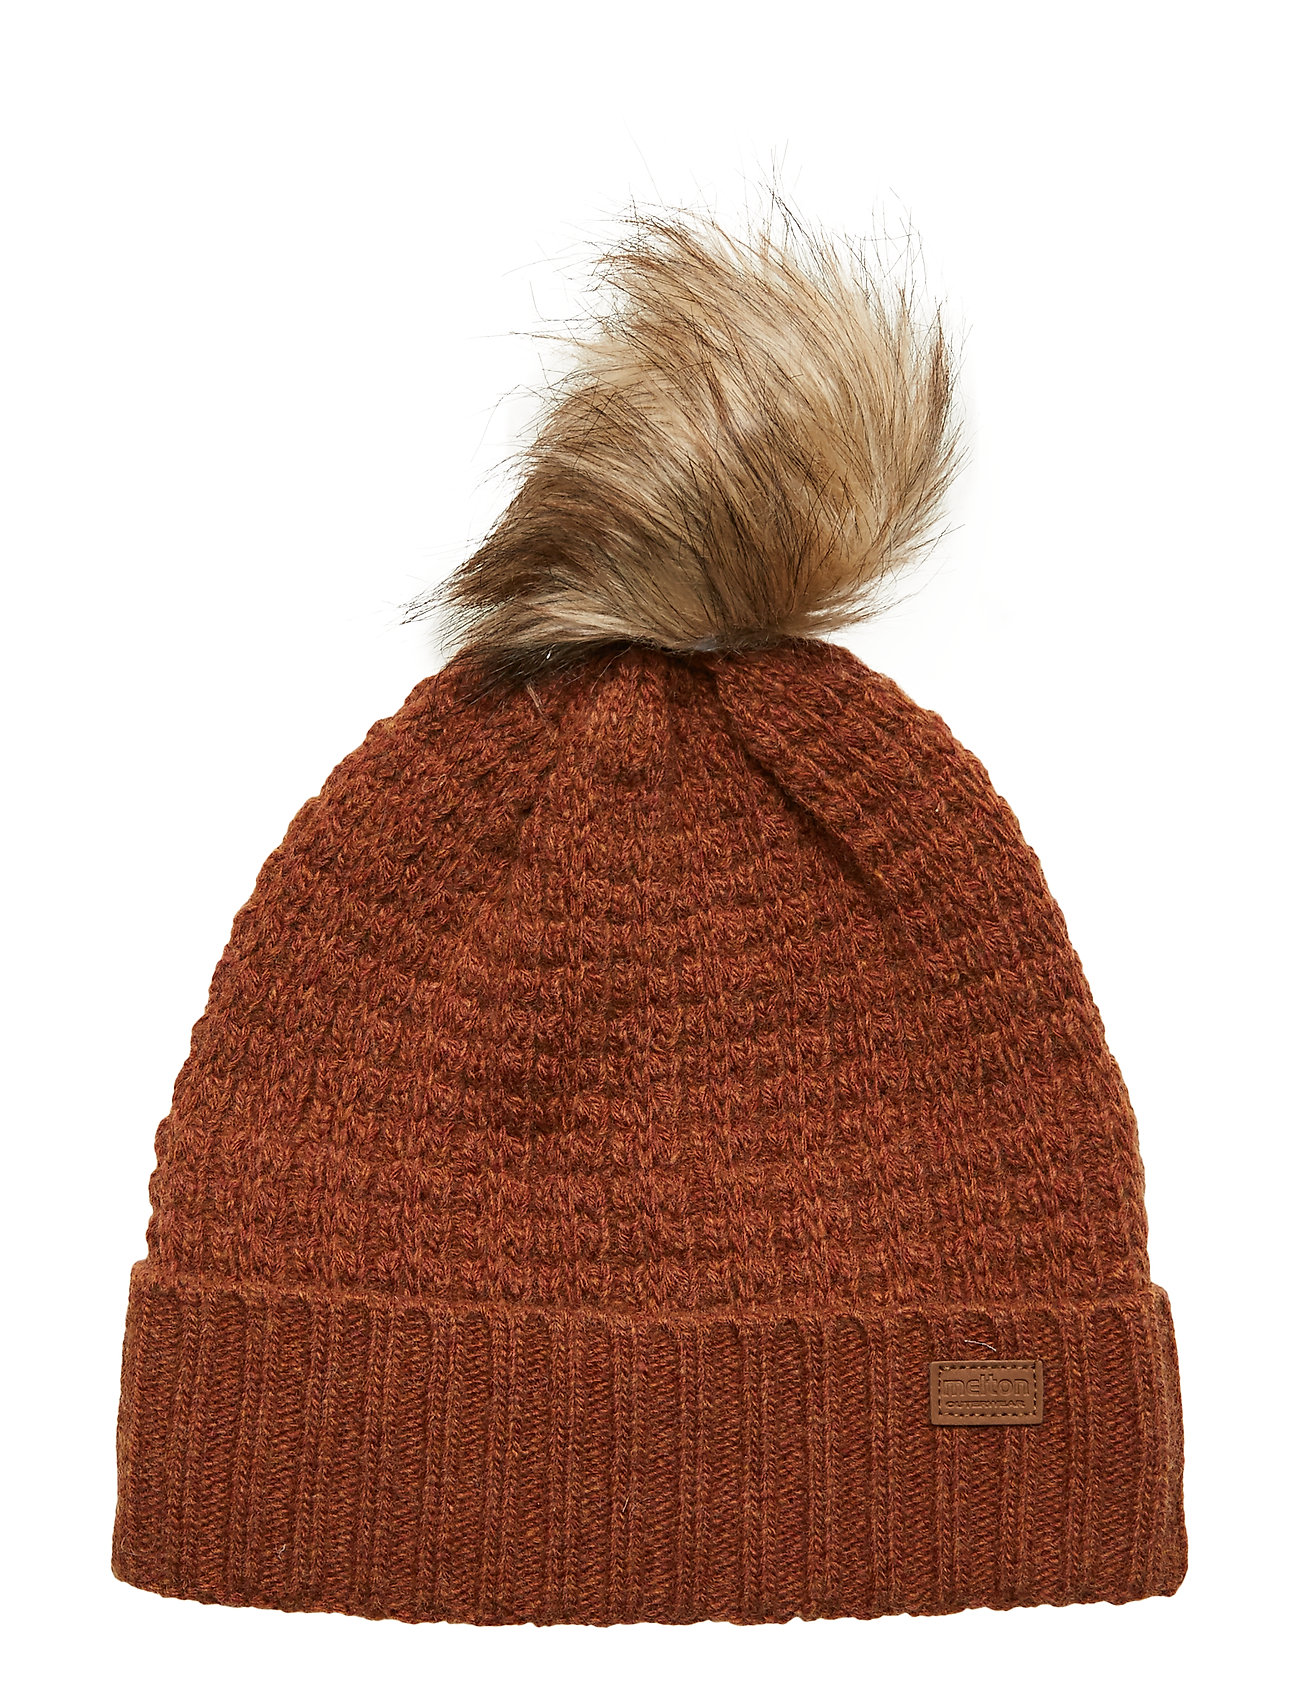 Melton LAMB WOOL Hat w. Structure - LEATHER BROWN